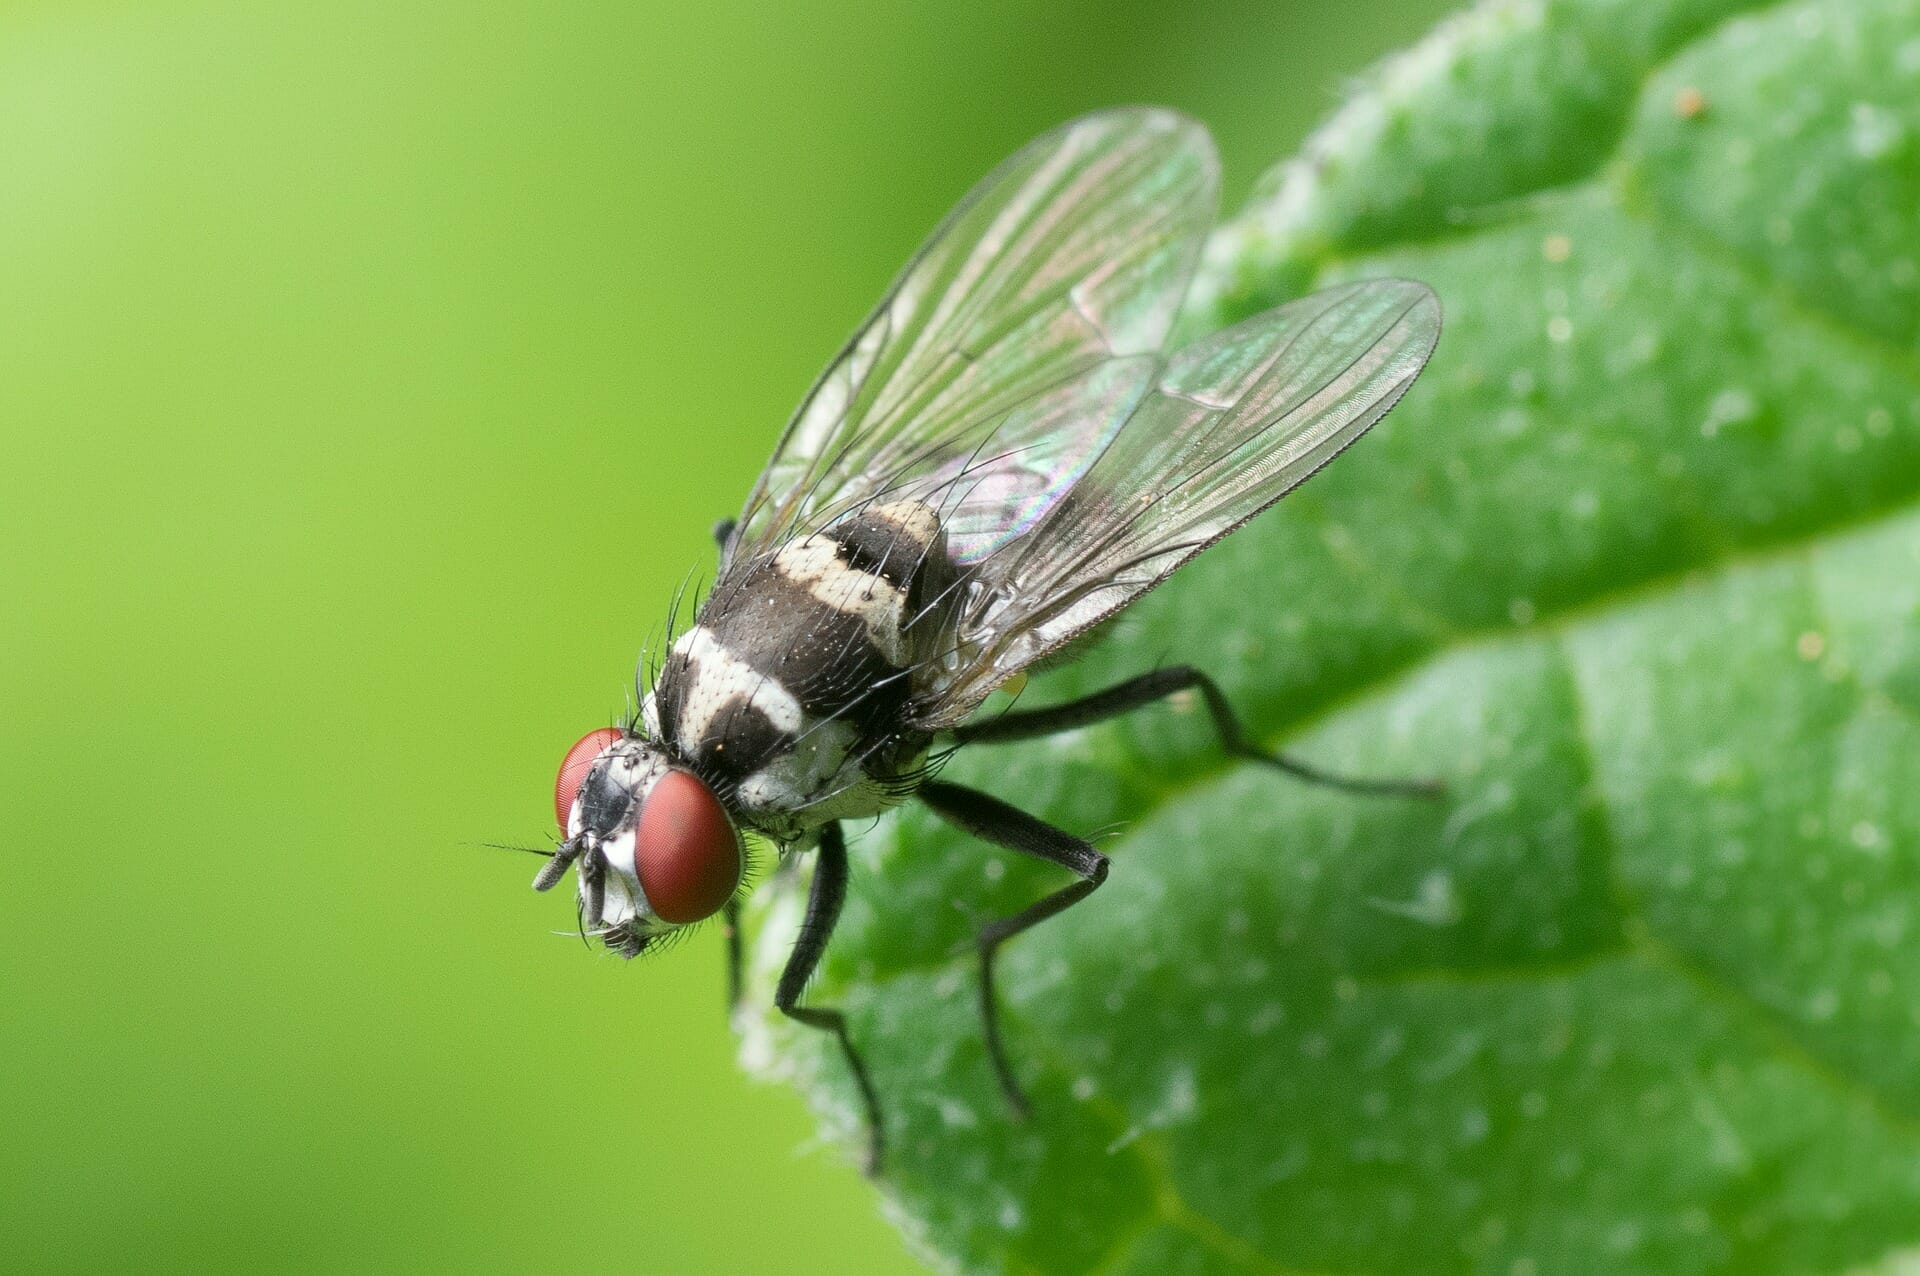 common-fly-447307_1920